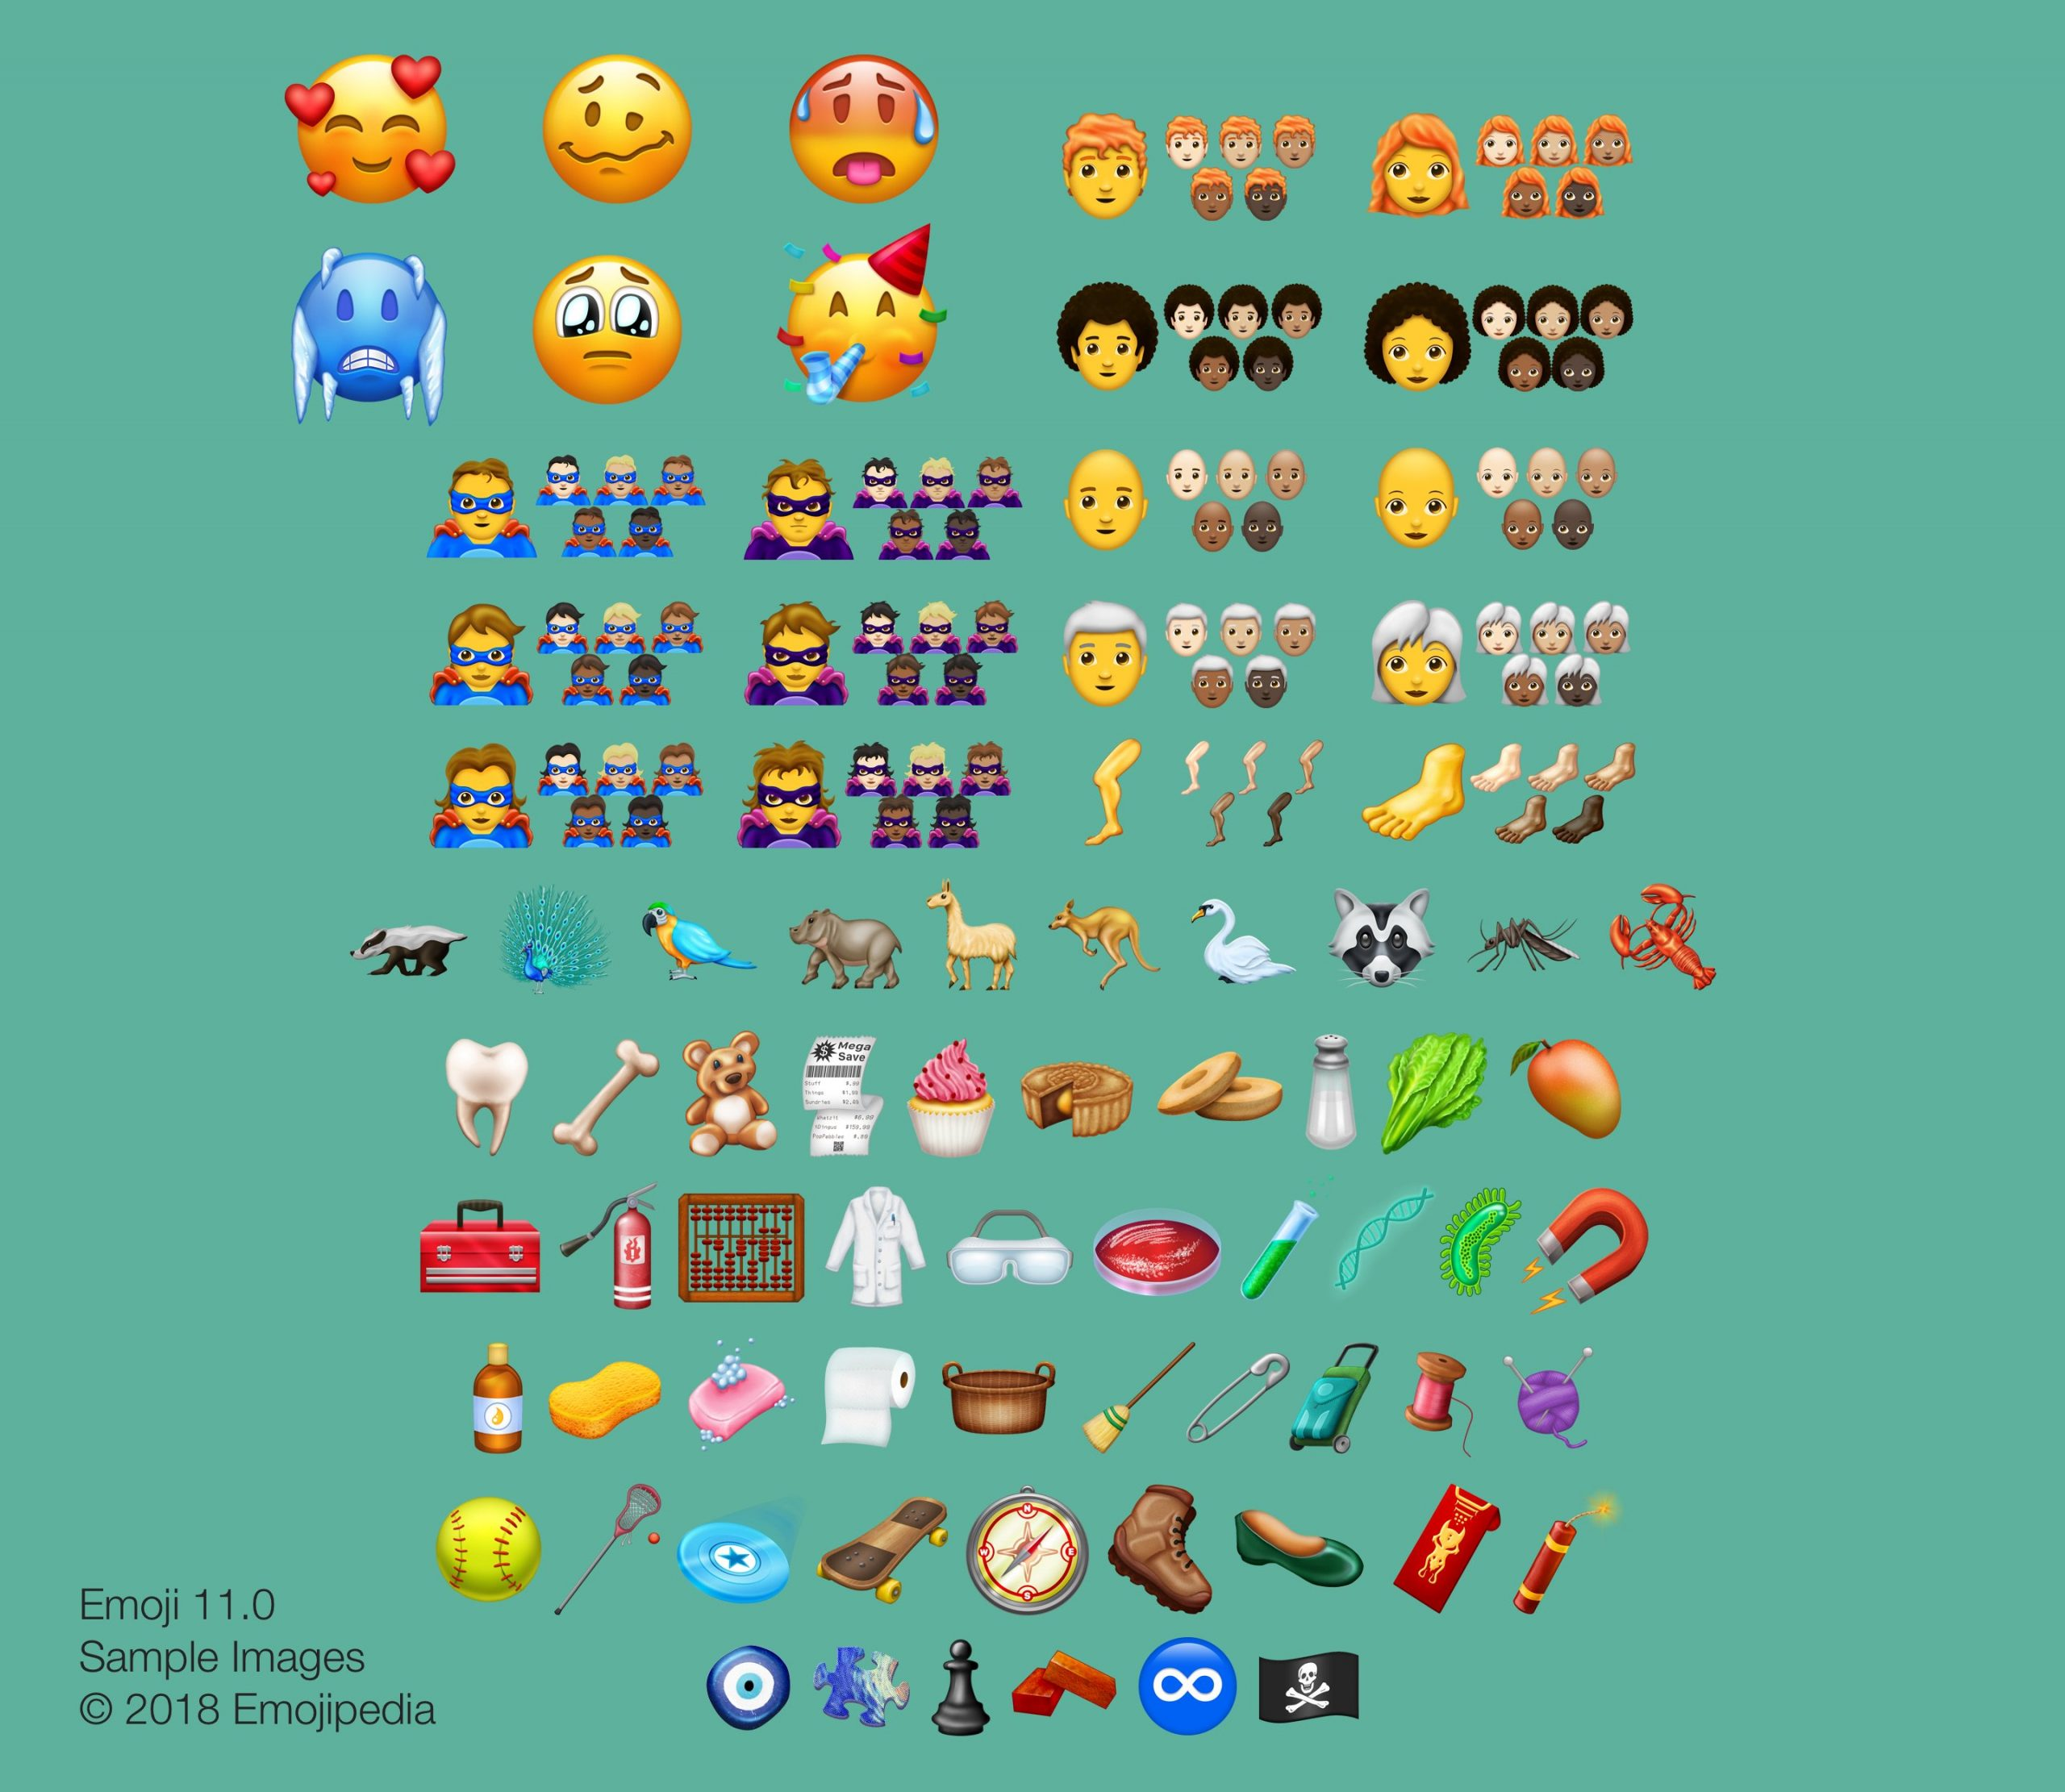 New emojis are on the way!